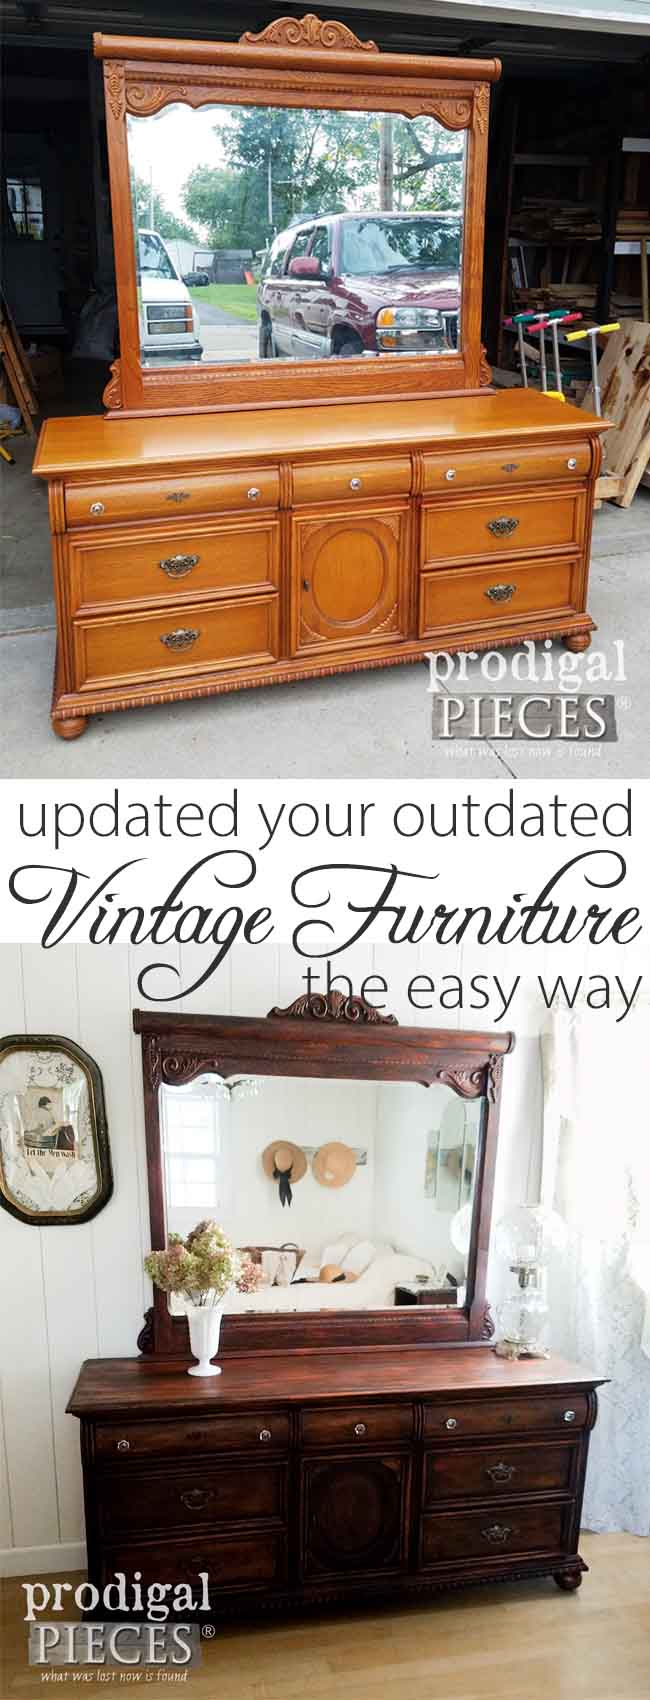 Update your outdated furniture the easy way. No sanding, no prep work, just DIY! Get the details here at Prodigal Pieces | prodigalpieces.com